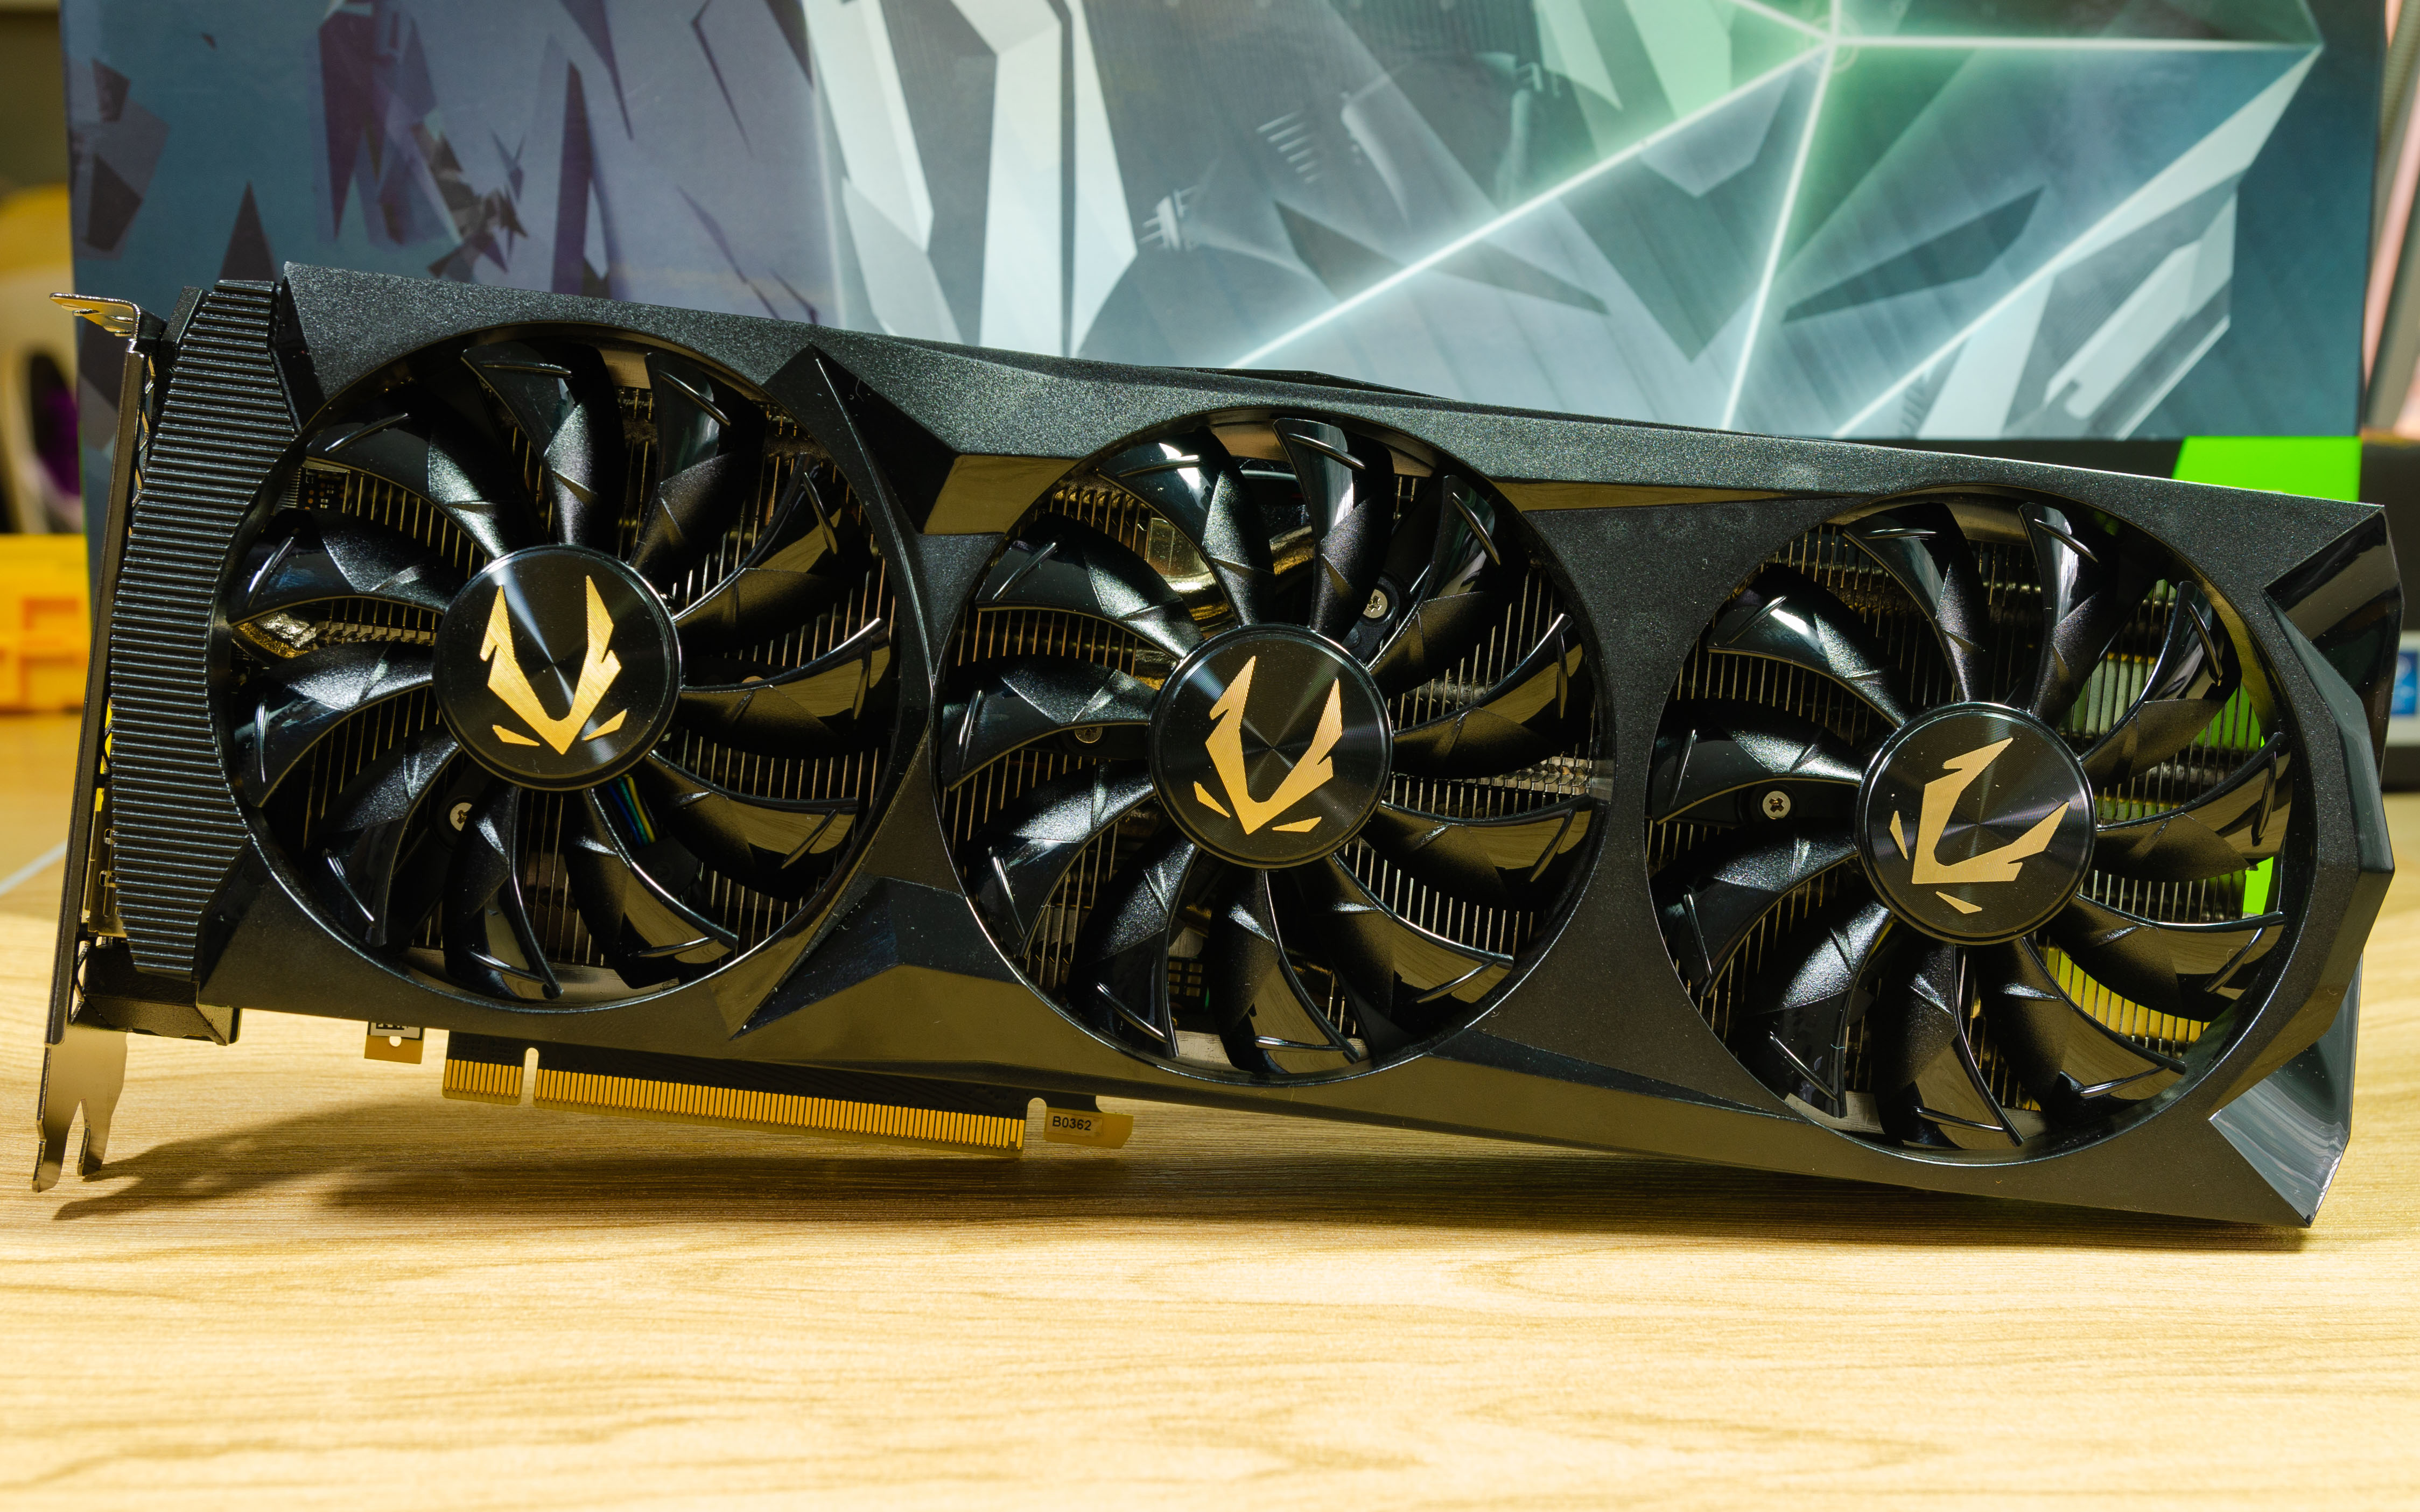 Unboxing Preview Zotac Gaming Geforce Rtx 2080 Ti Amp Edition